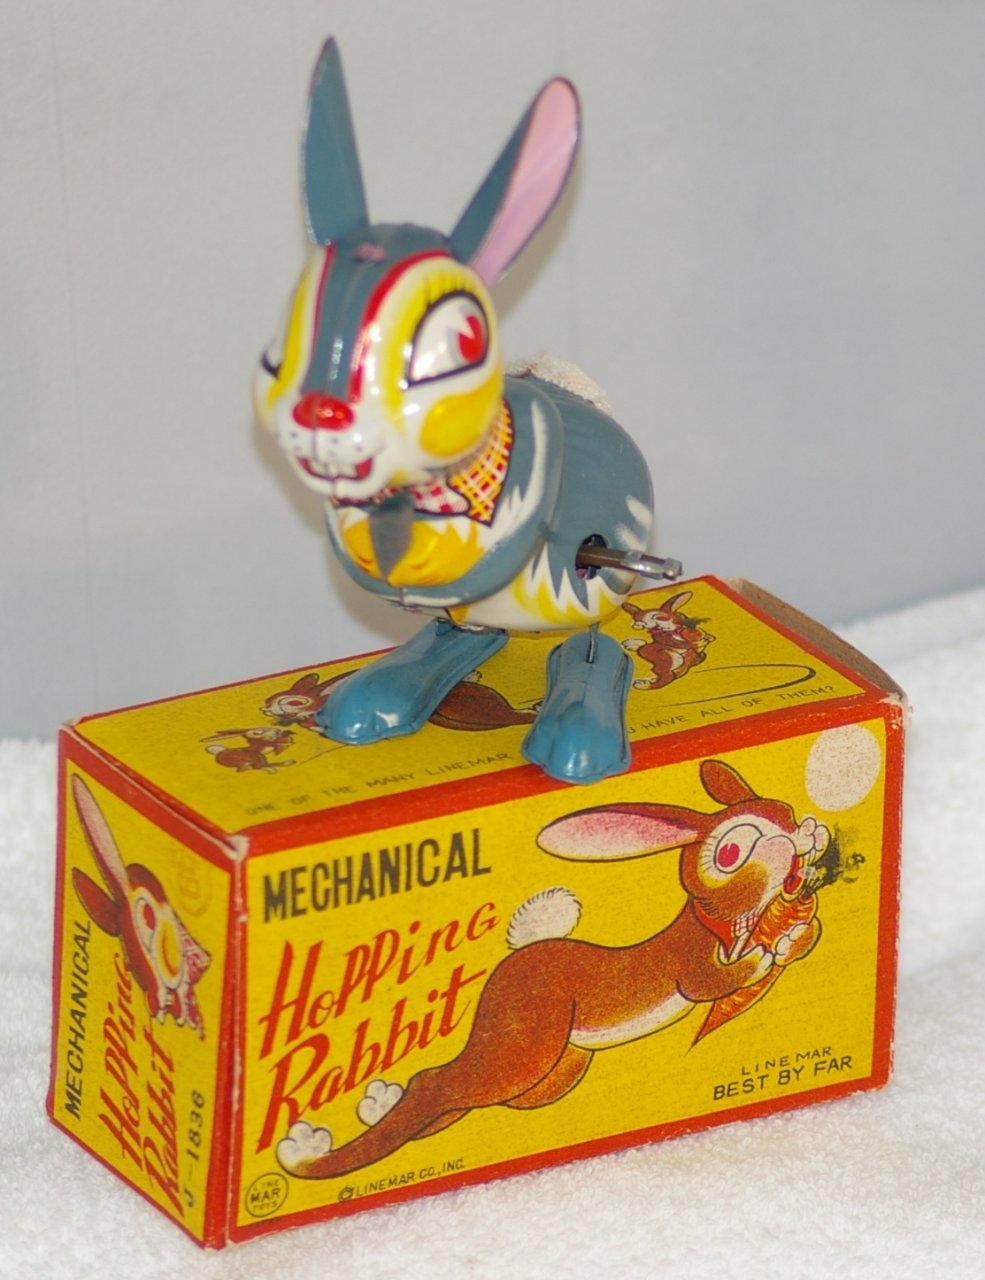 Linemar Windup Hopping Rabbit J-1836 from 1950s